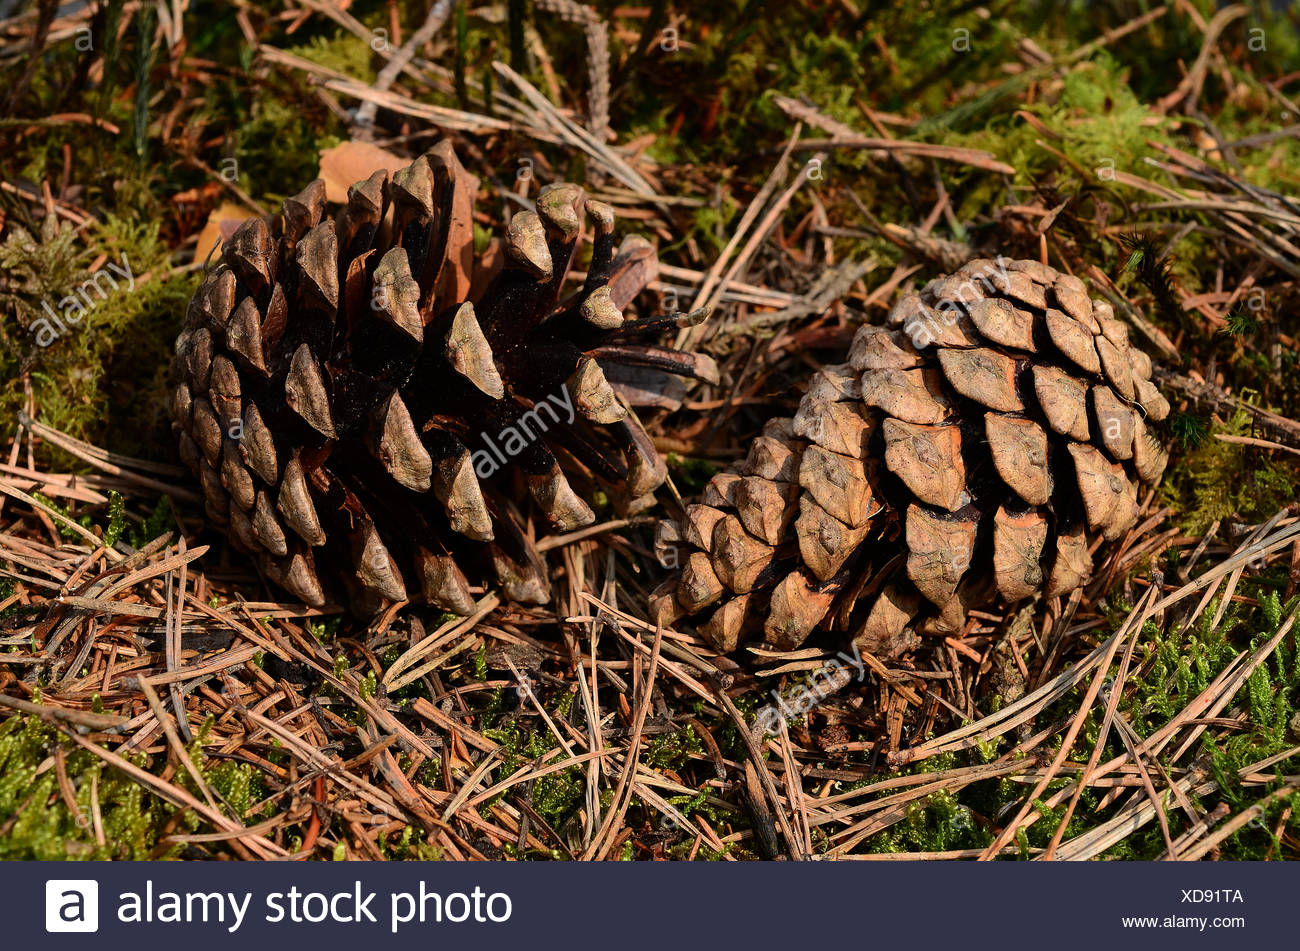 pine, pinewood, conifer, seed, cones - Stock Image